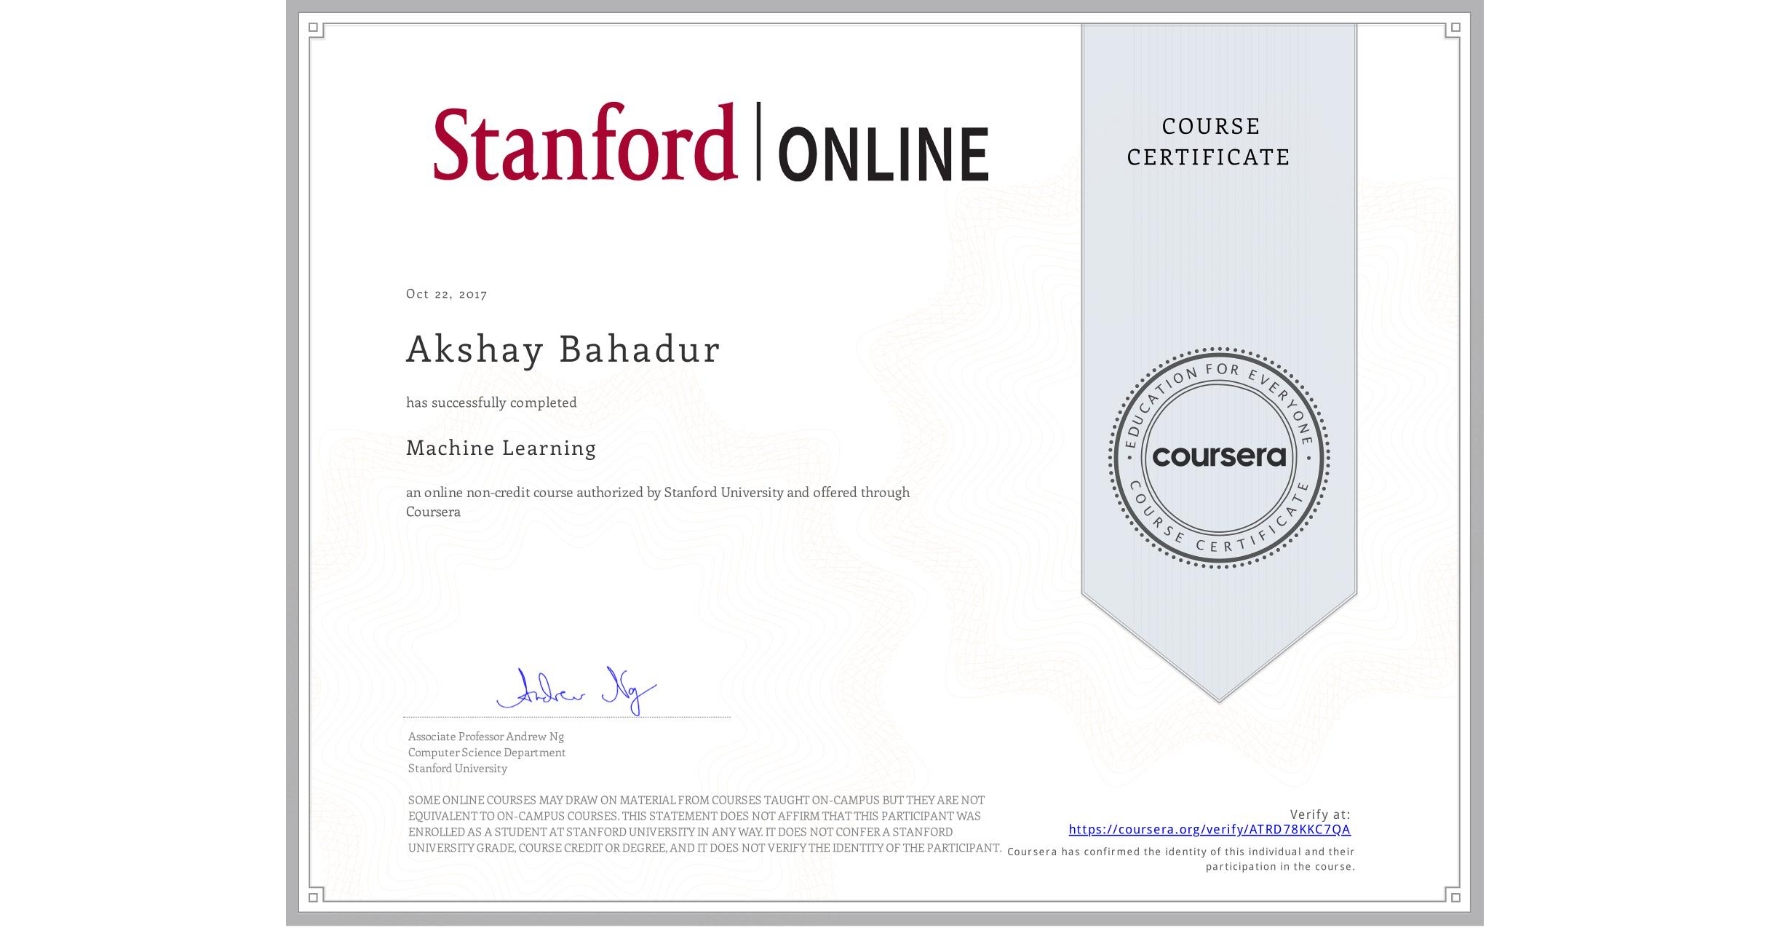 View certificate for Akshay Bahadur, Machine Learning, an online non-credit course authorized by Stanford University and offered through Coursera